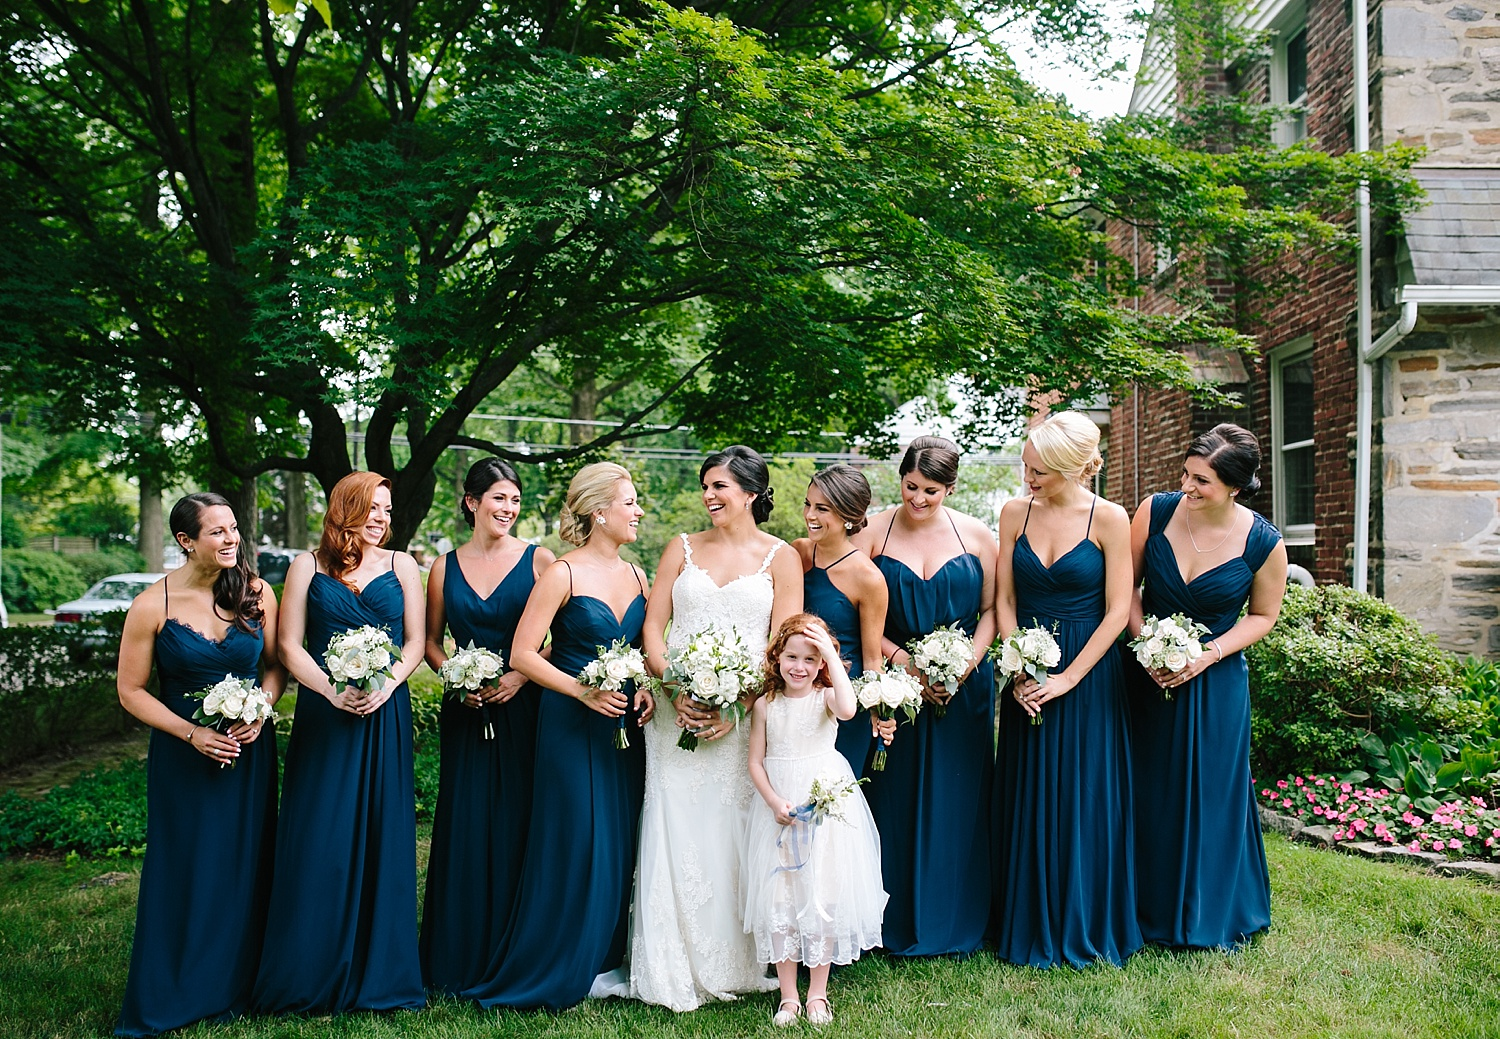 emilyandjoe_bluebell_countryclub_philadelphia_wedding_image038.jpg